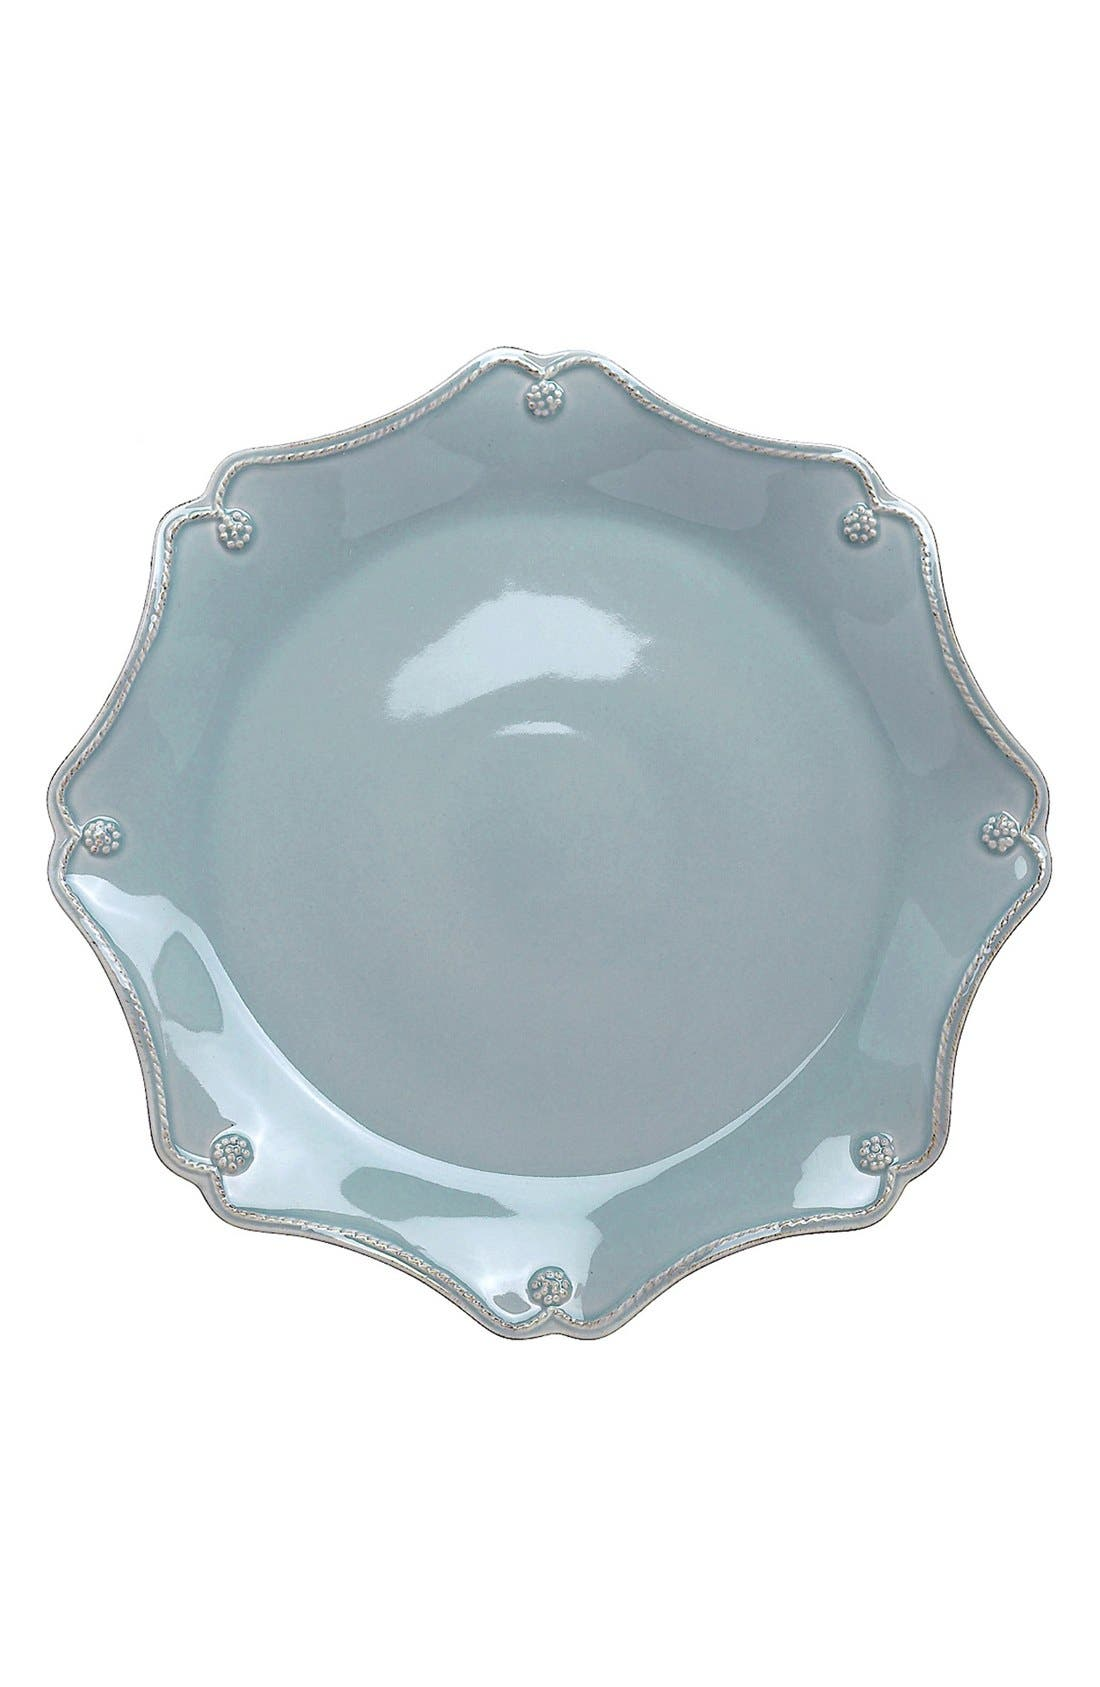 Alternate Image 1 Selected - Juliska'Berry and Thread' Scallop Charger Plate